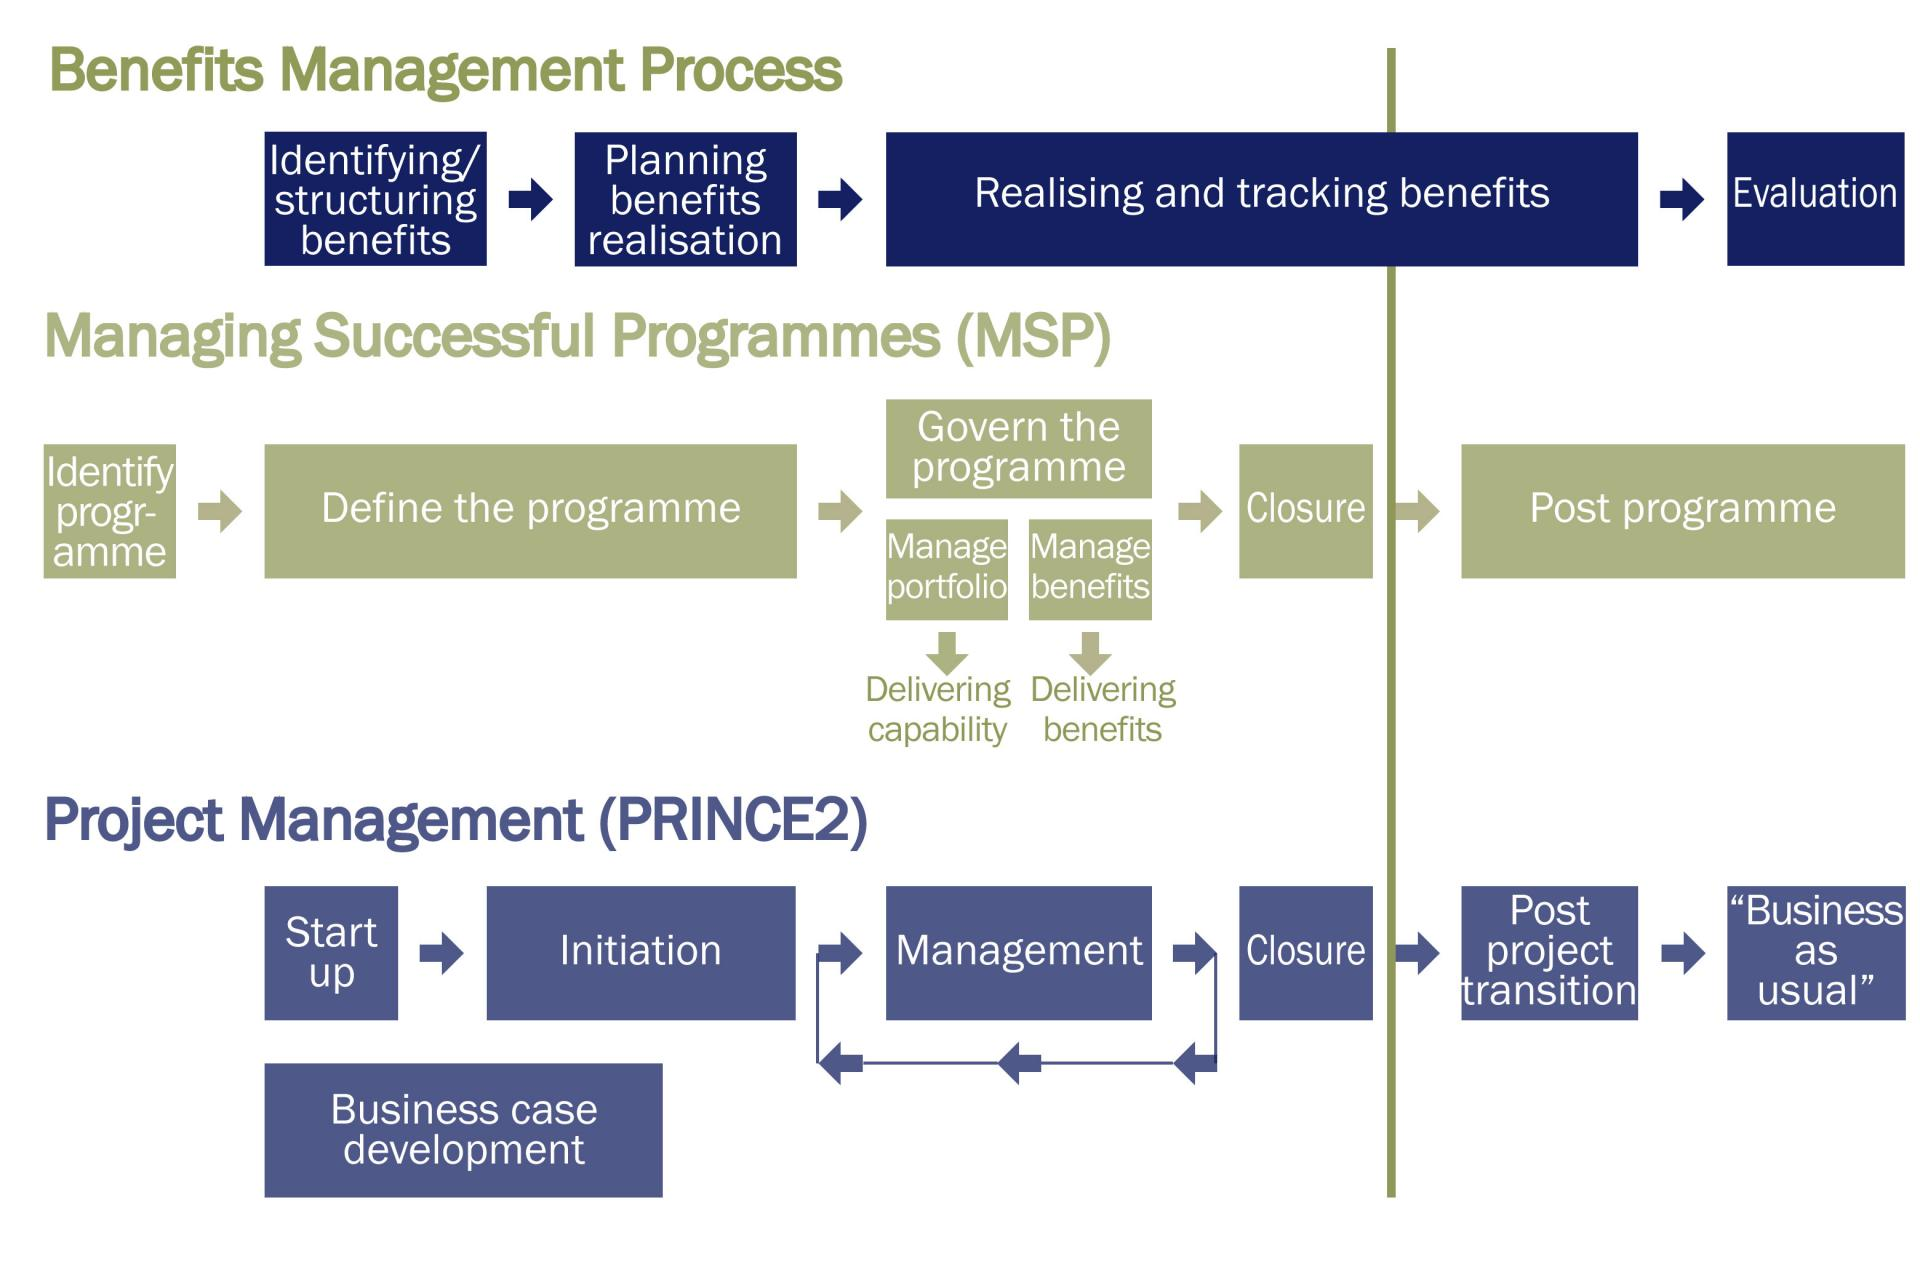 Common questions and answers on benefits management department benefits management diagram comparing prince2 and managing successful programmes pooptronica Image collections